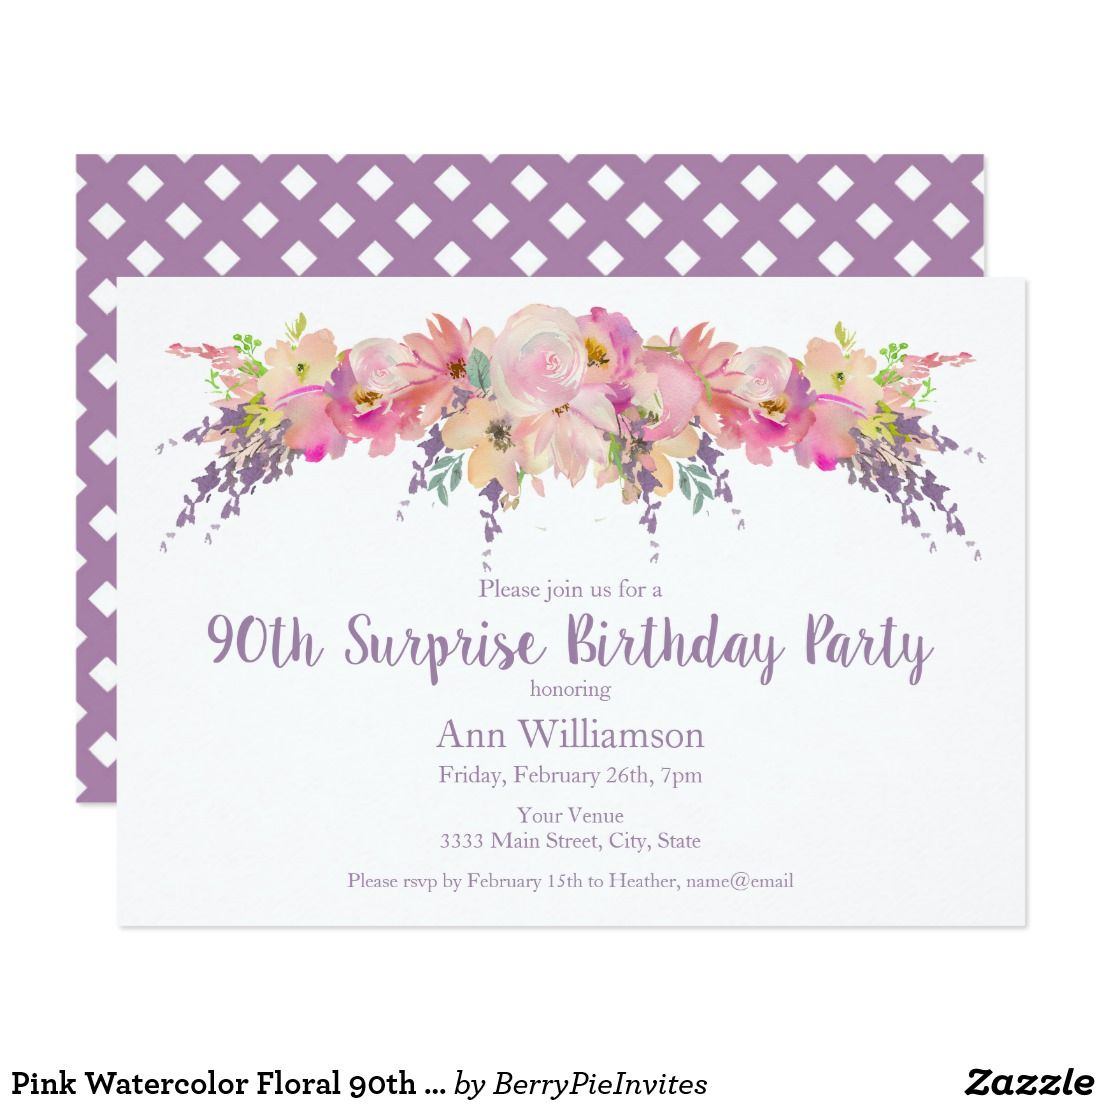 Pink Watercolor Floral 90th Surprise Birthday Invitation | { Happy ...